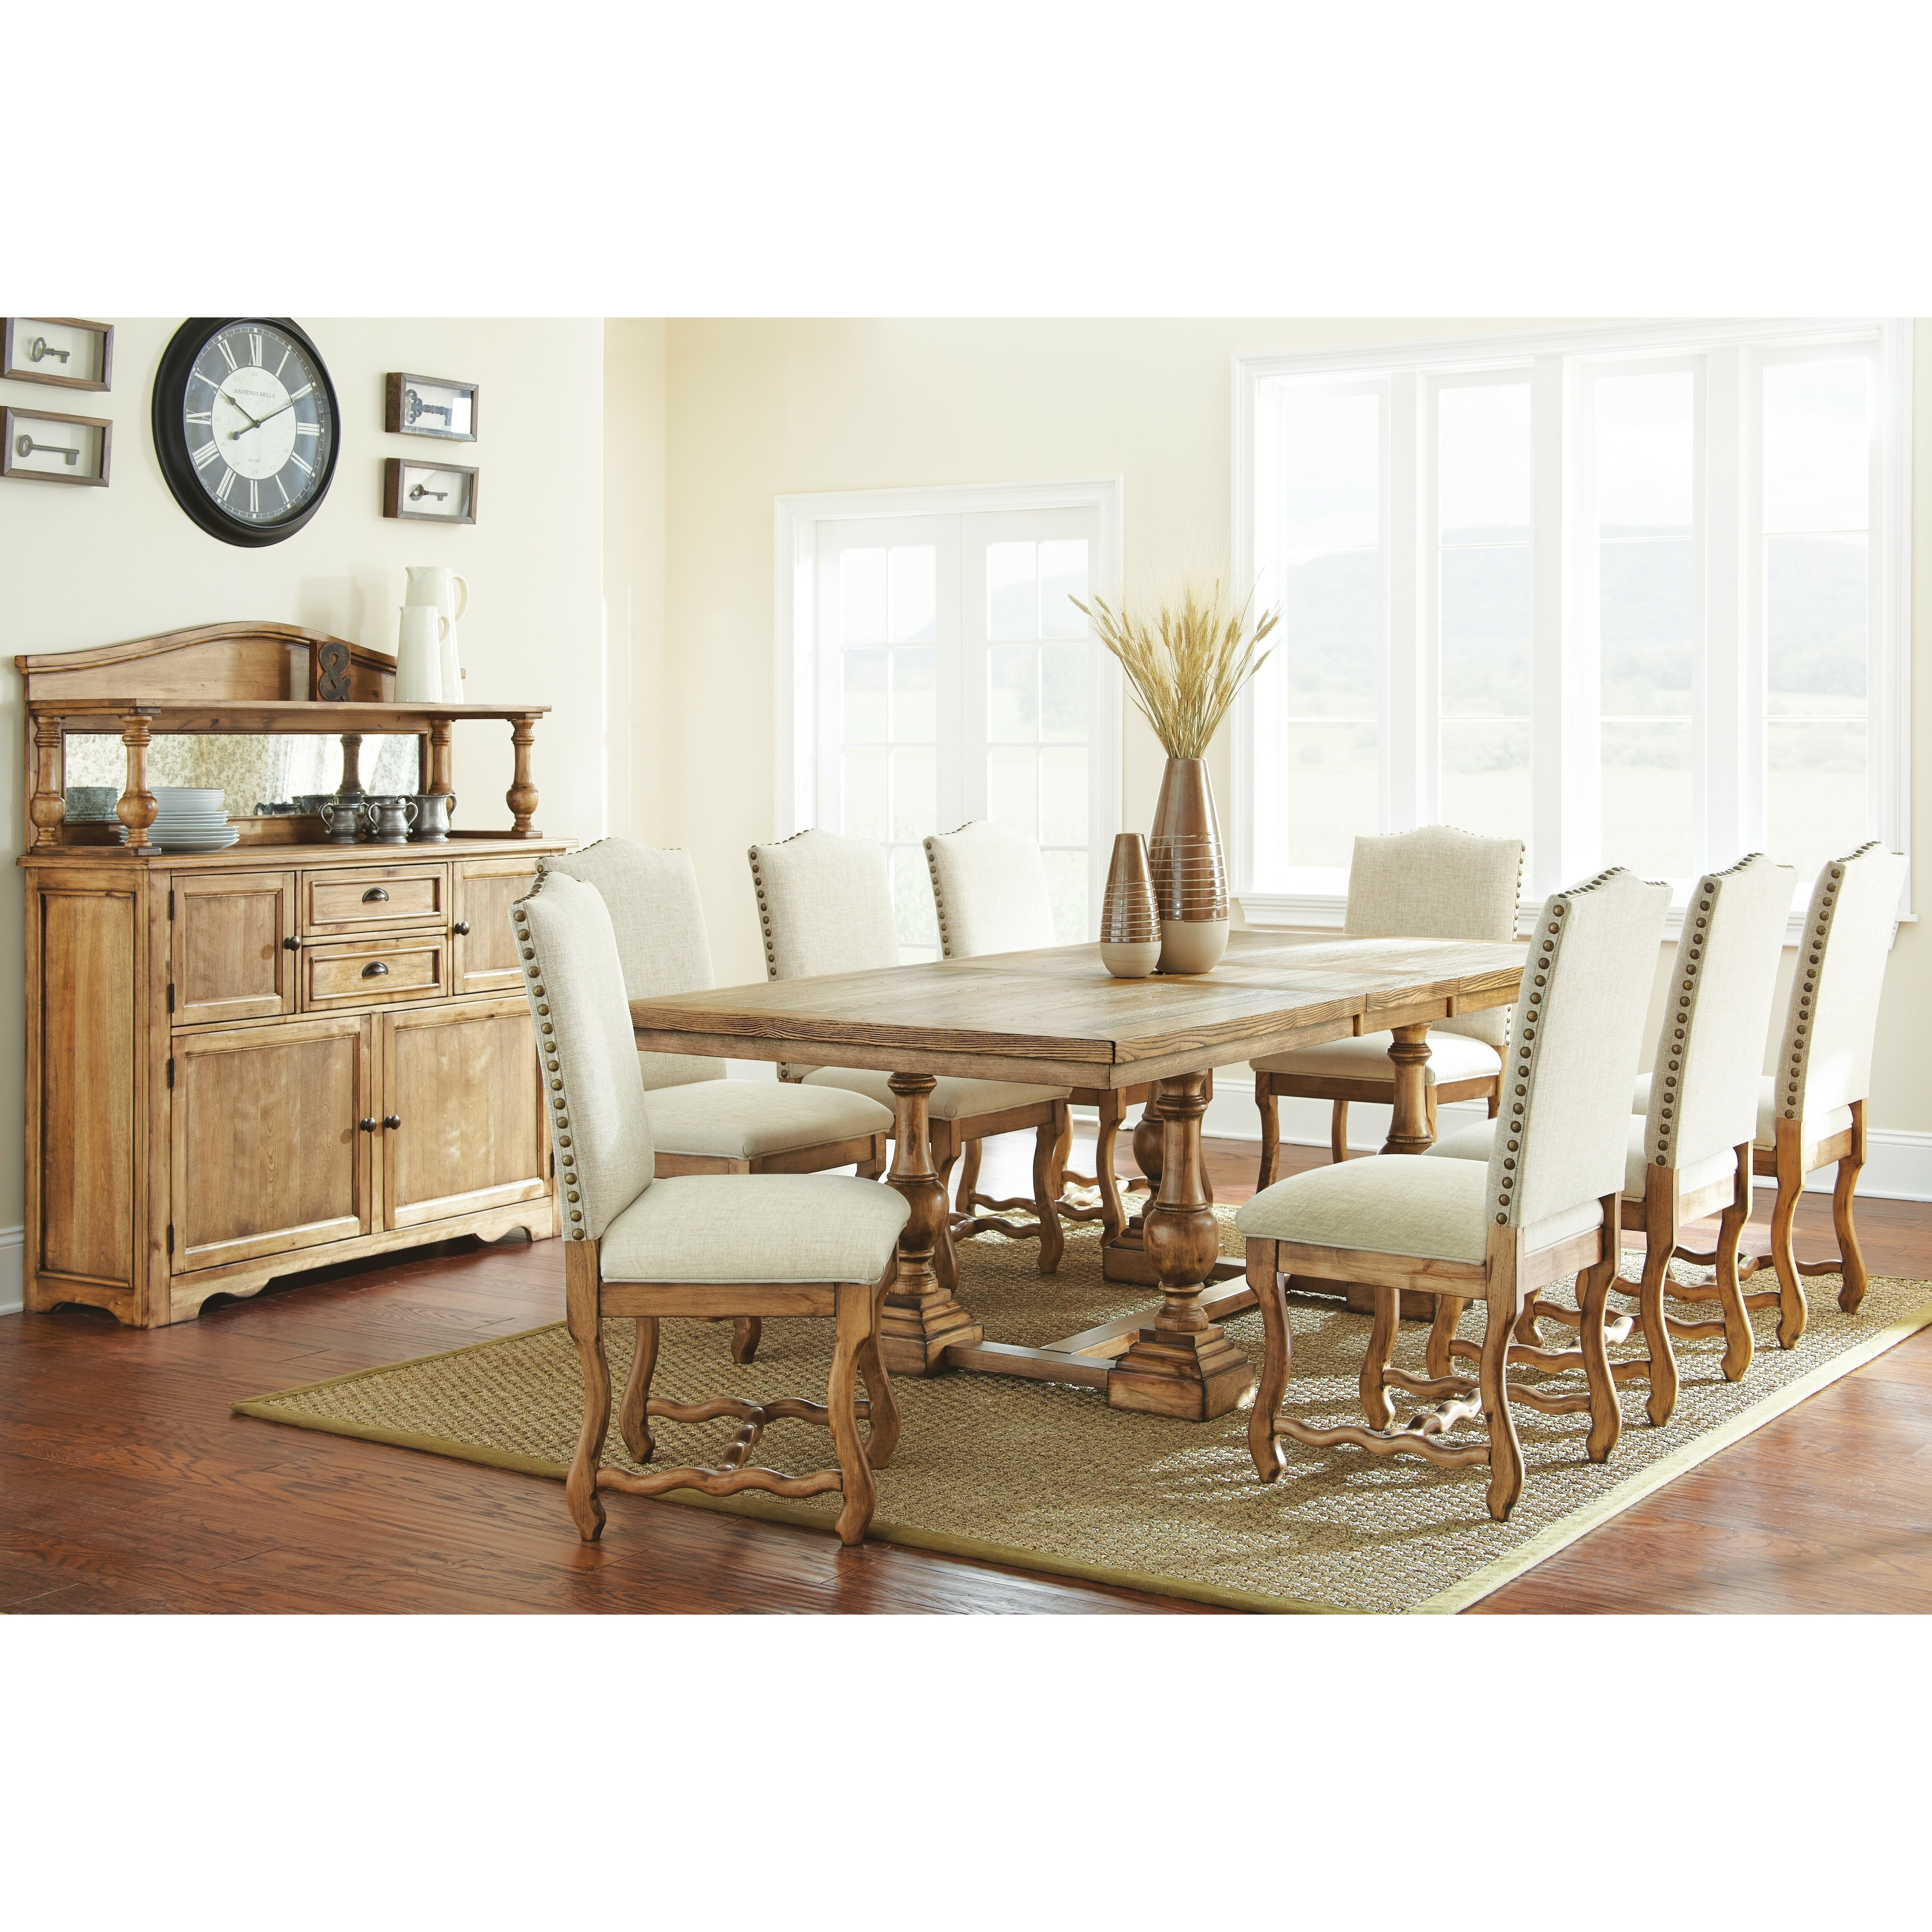 Steve silver furniture plymouth side chair reviews wayfair for House to home plymouth furniture